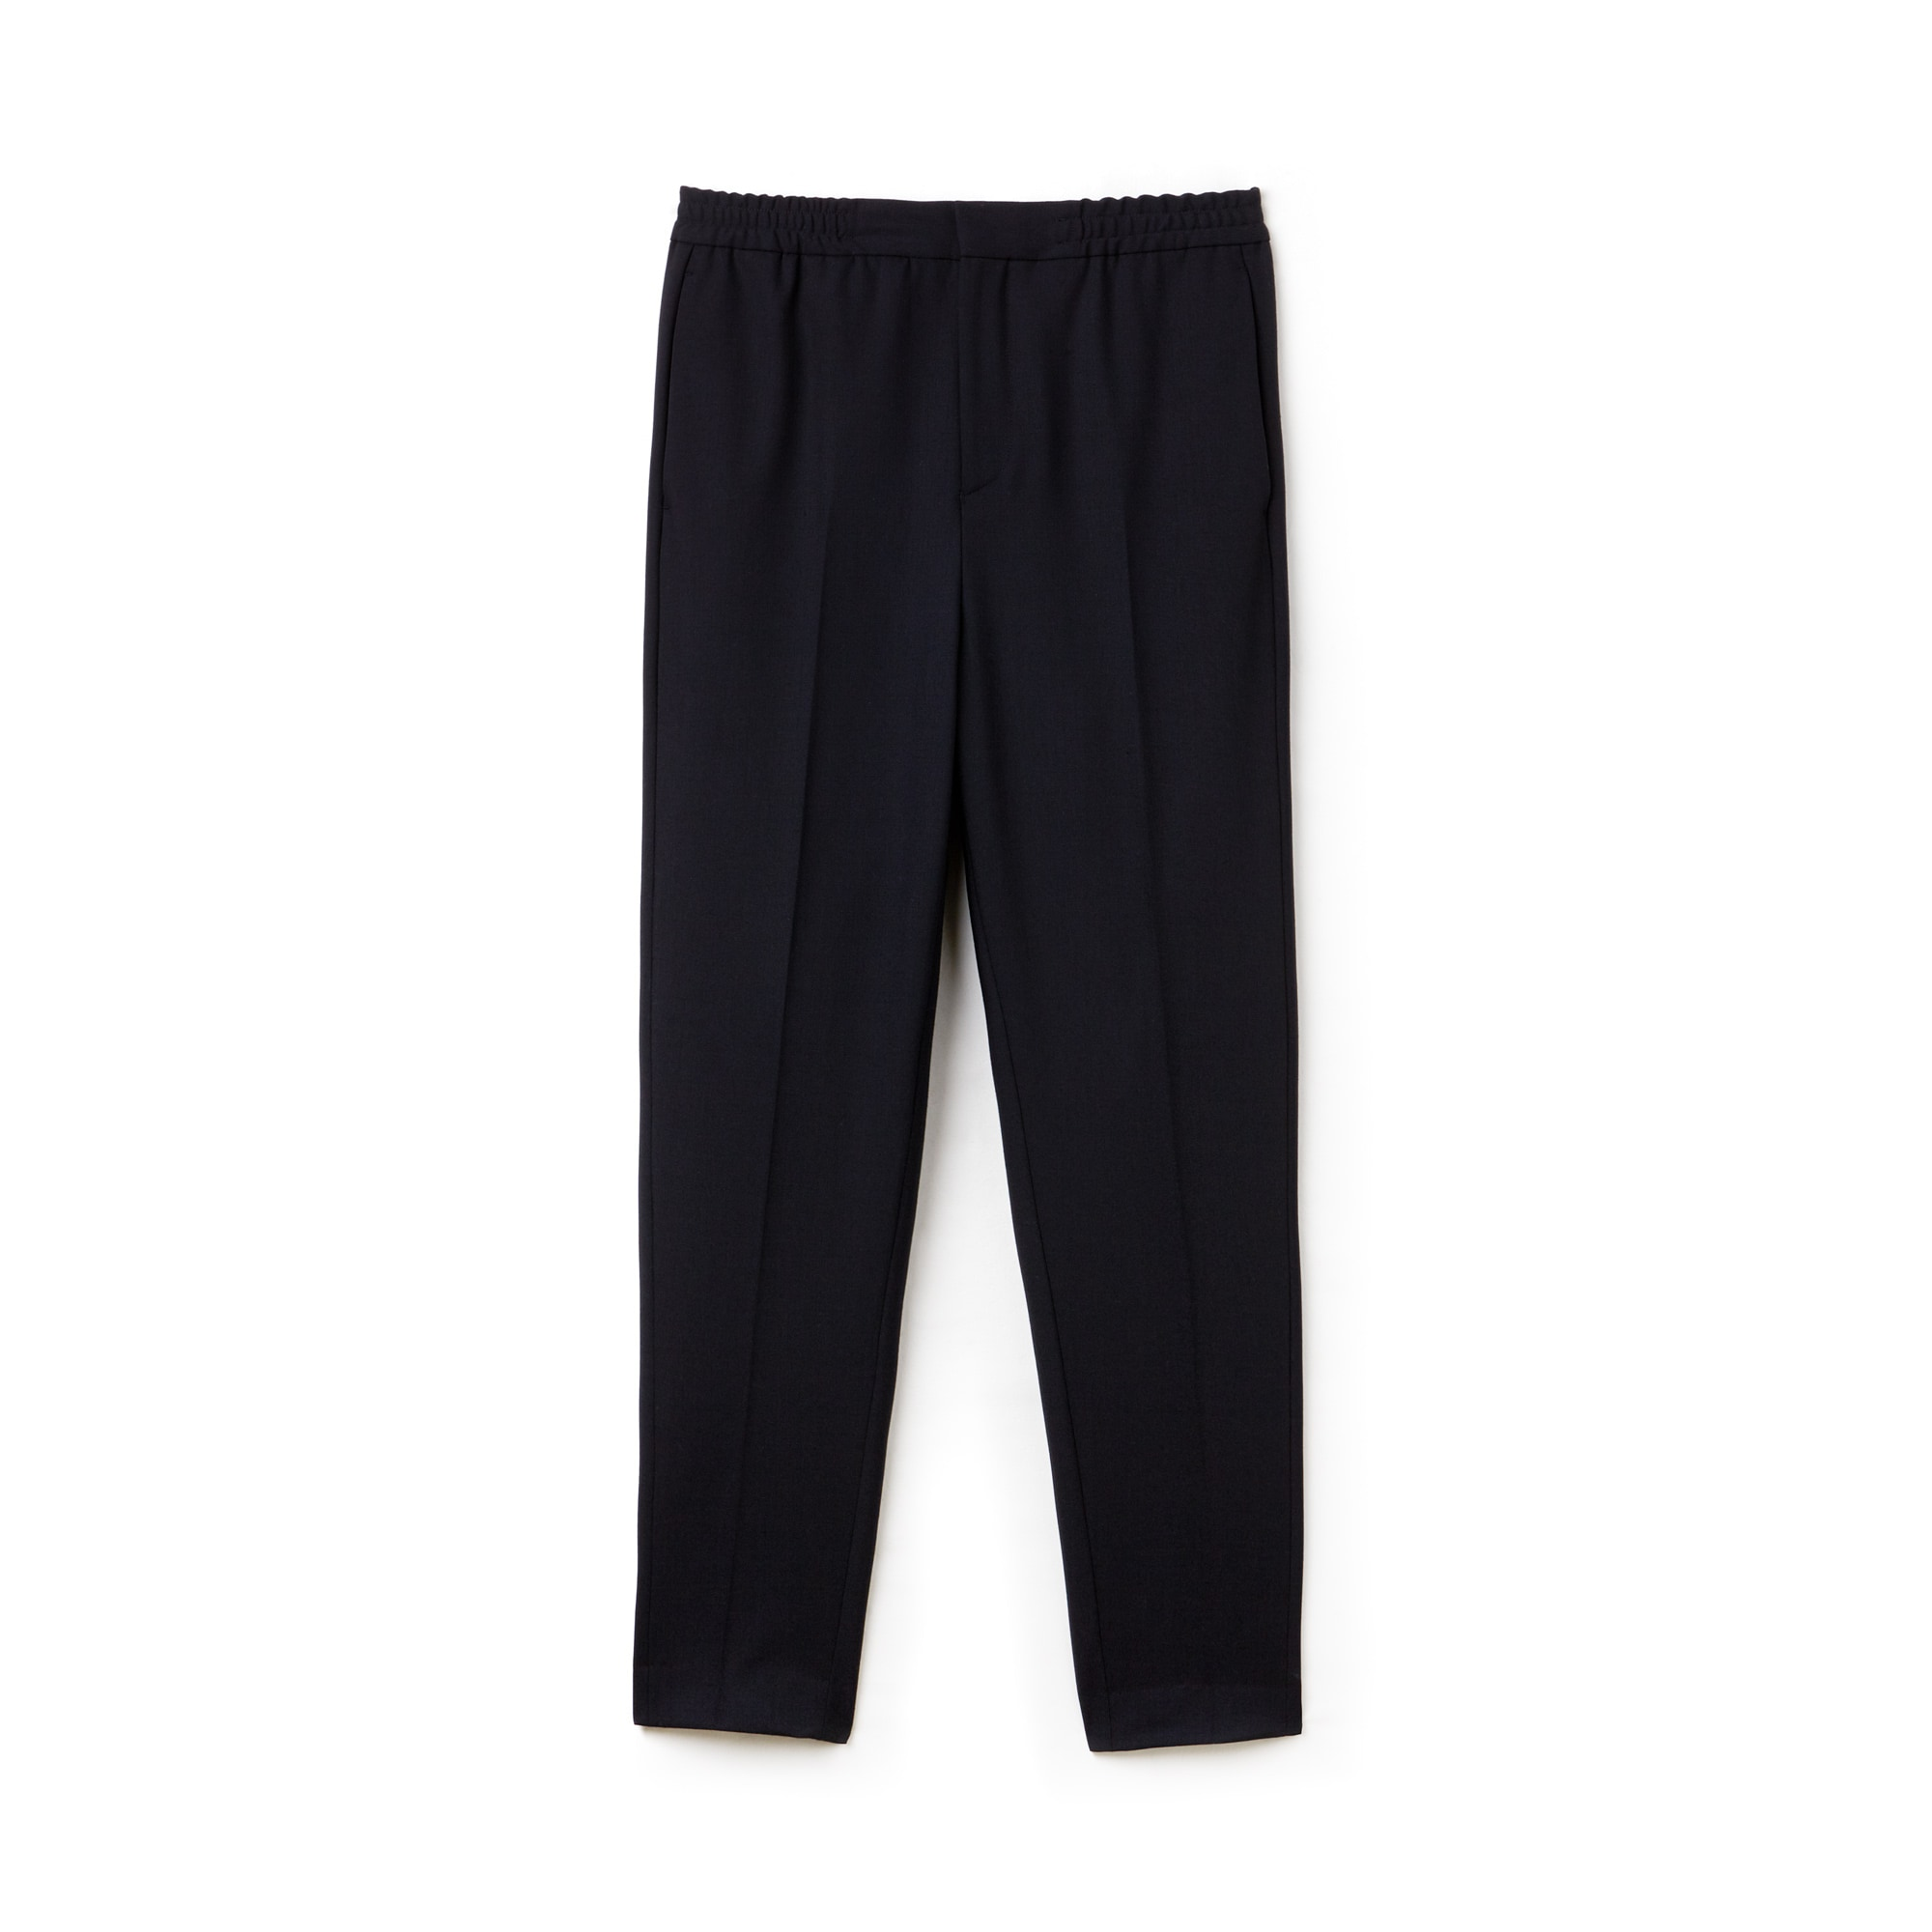 Men's Lacoste Motion Pleated Stretch Wool Twill Chino Pants